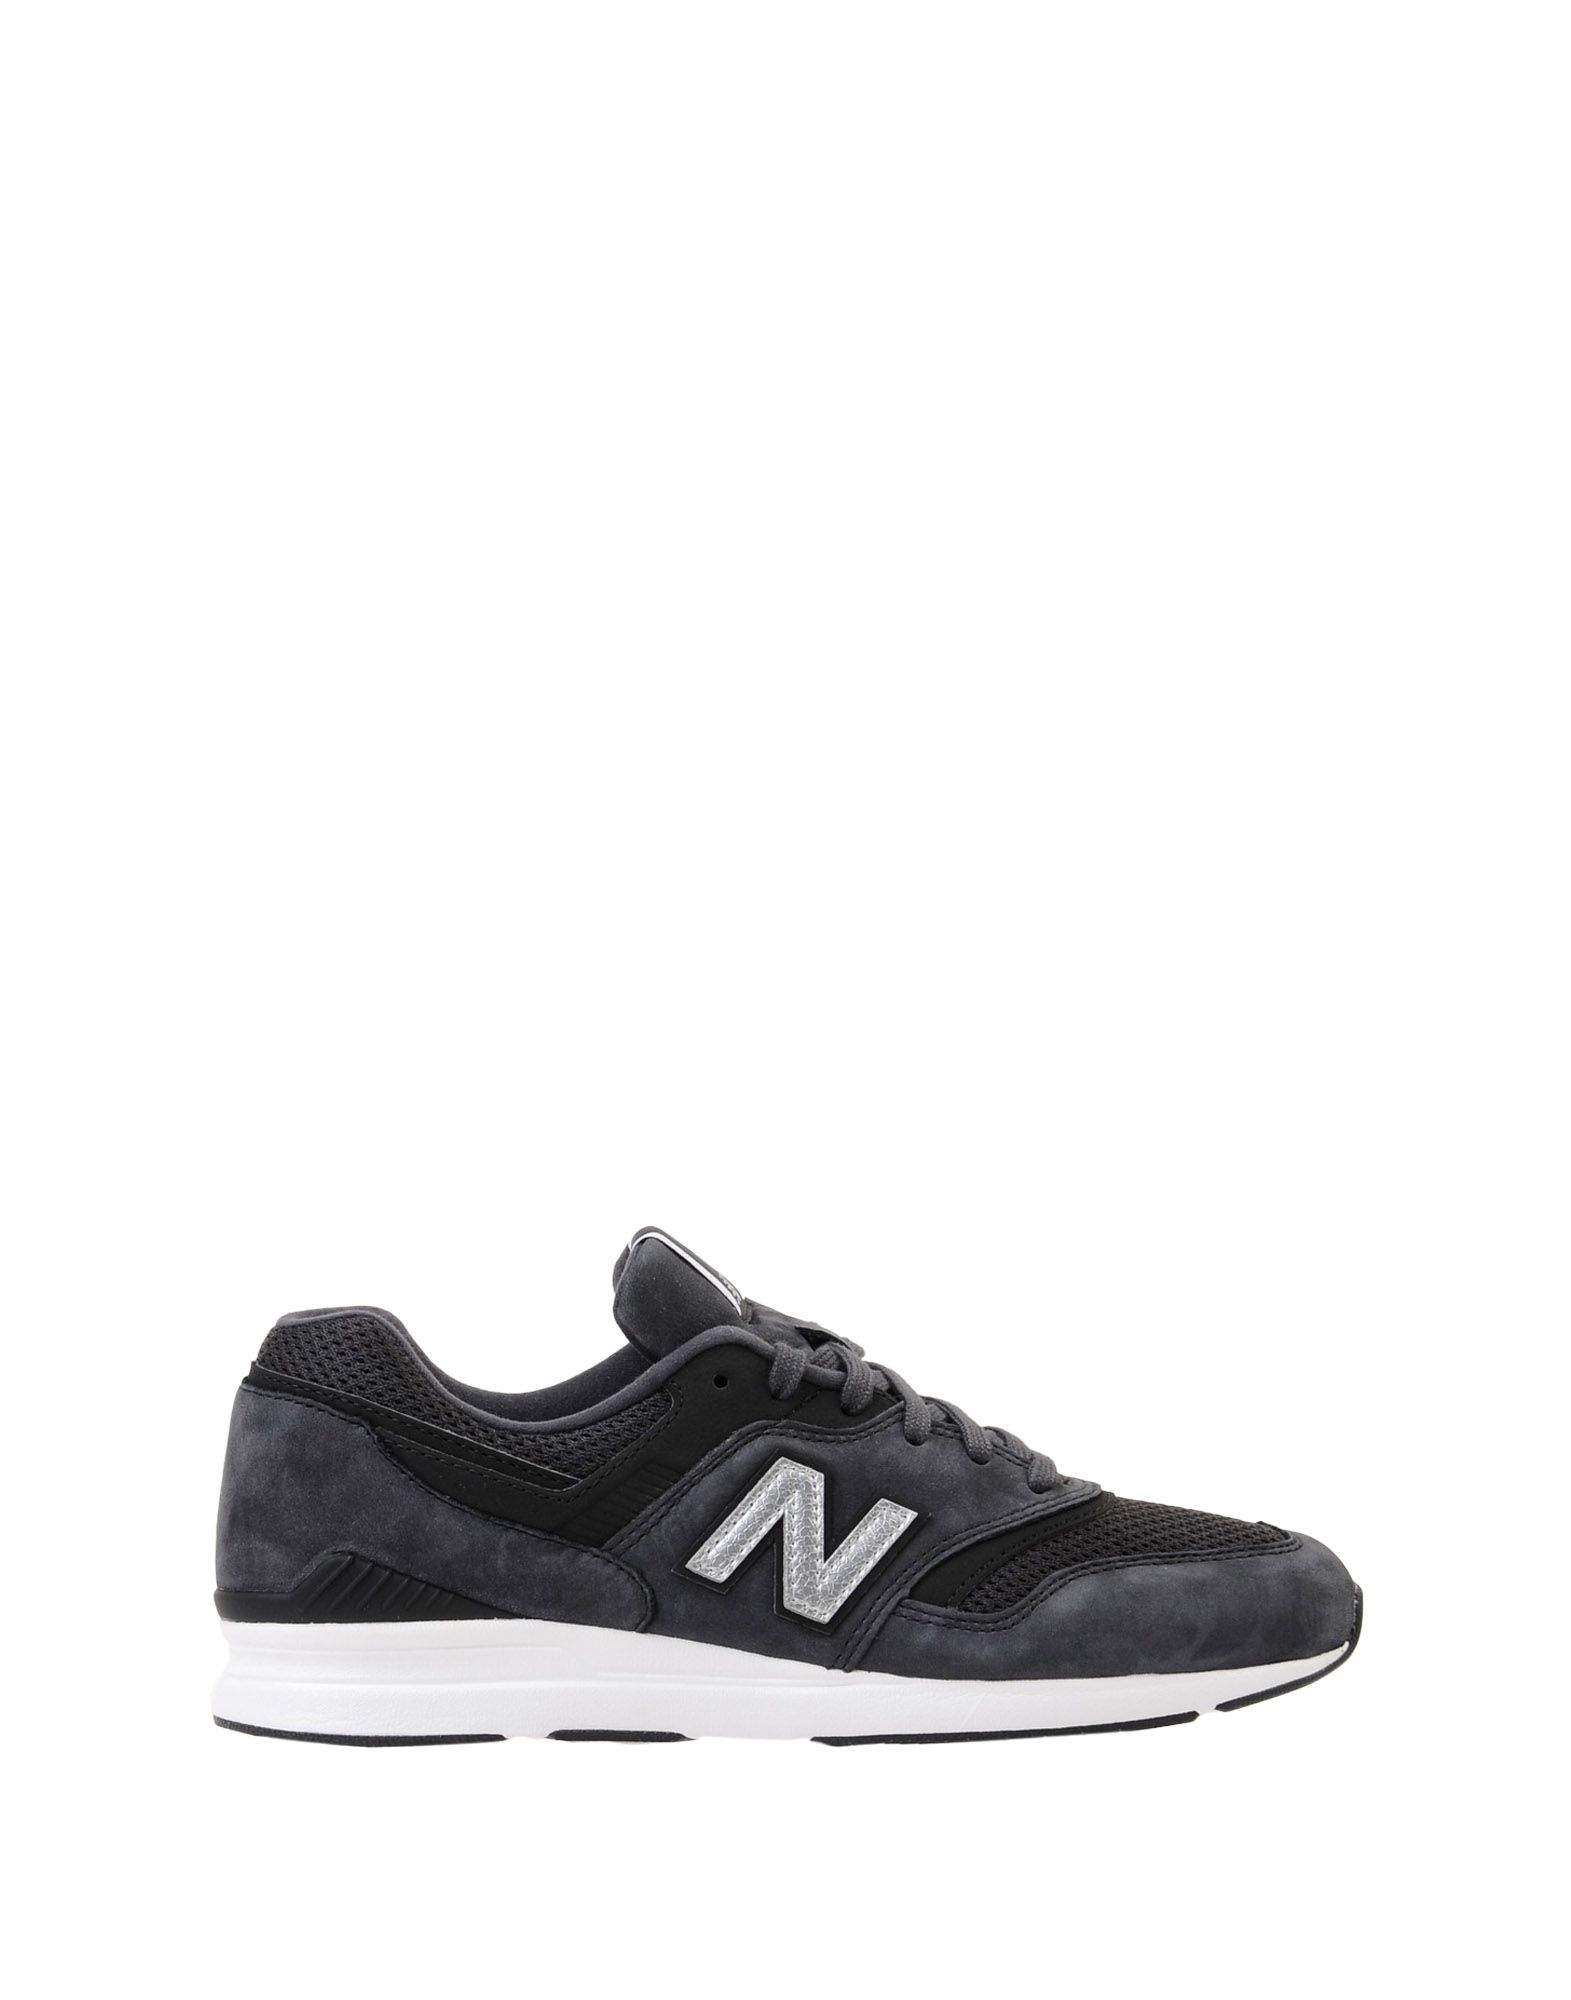 Sneakers New Balance 697 Tier 2 - Femme - Sneakers New Balance sur